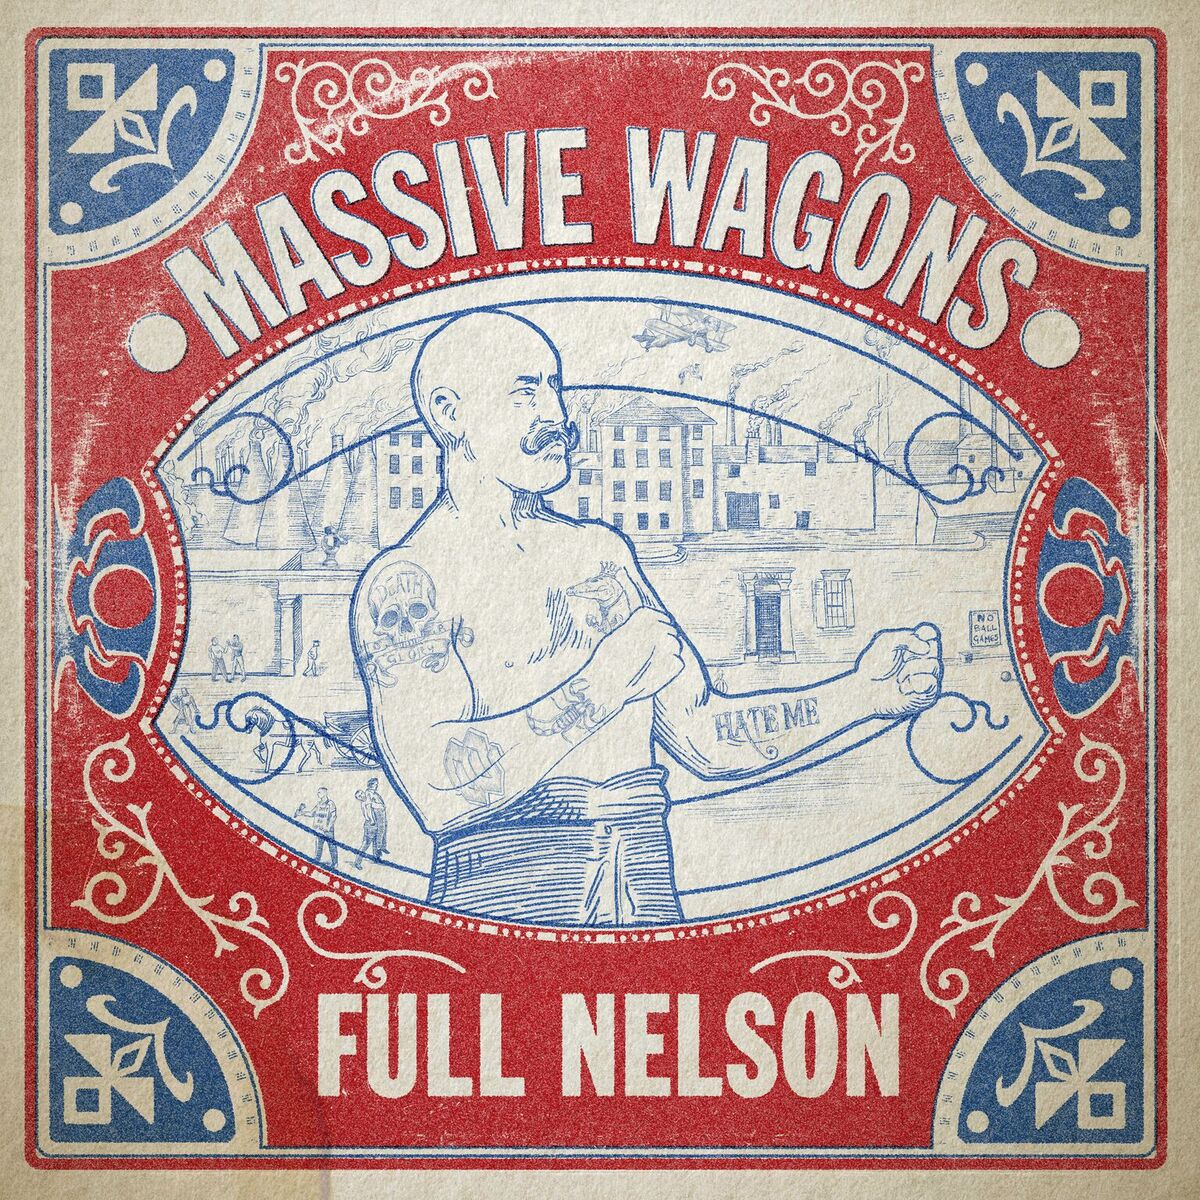 """Massive Wagons – New Album """"Full Nelson"""" #12 In The Mid-Week Charts!"""